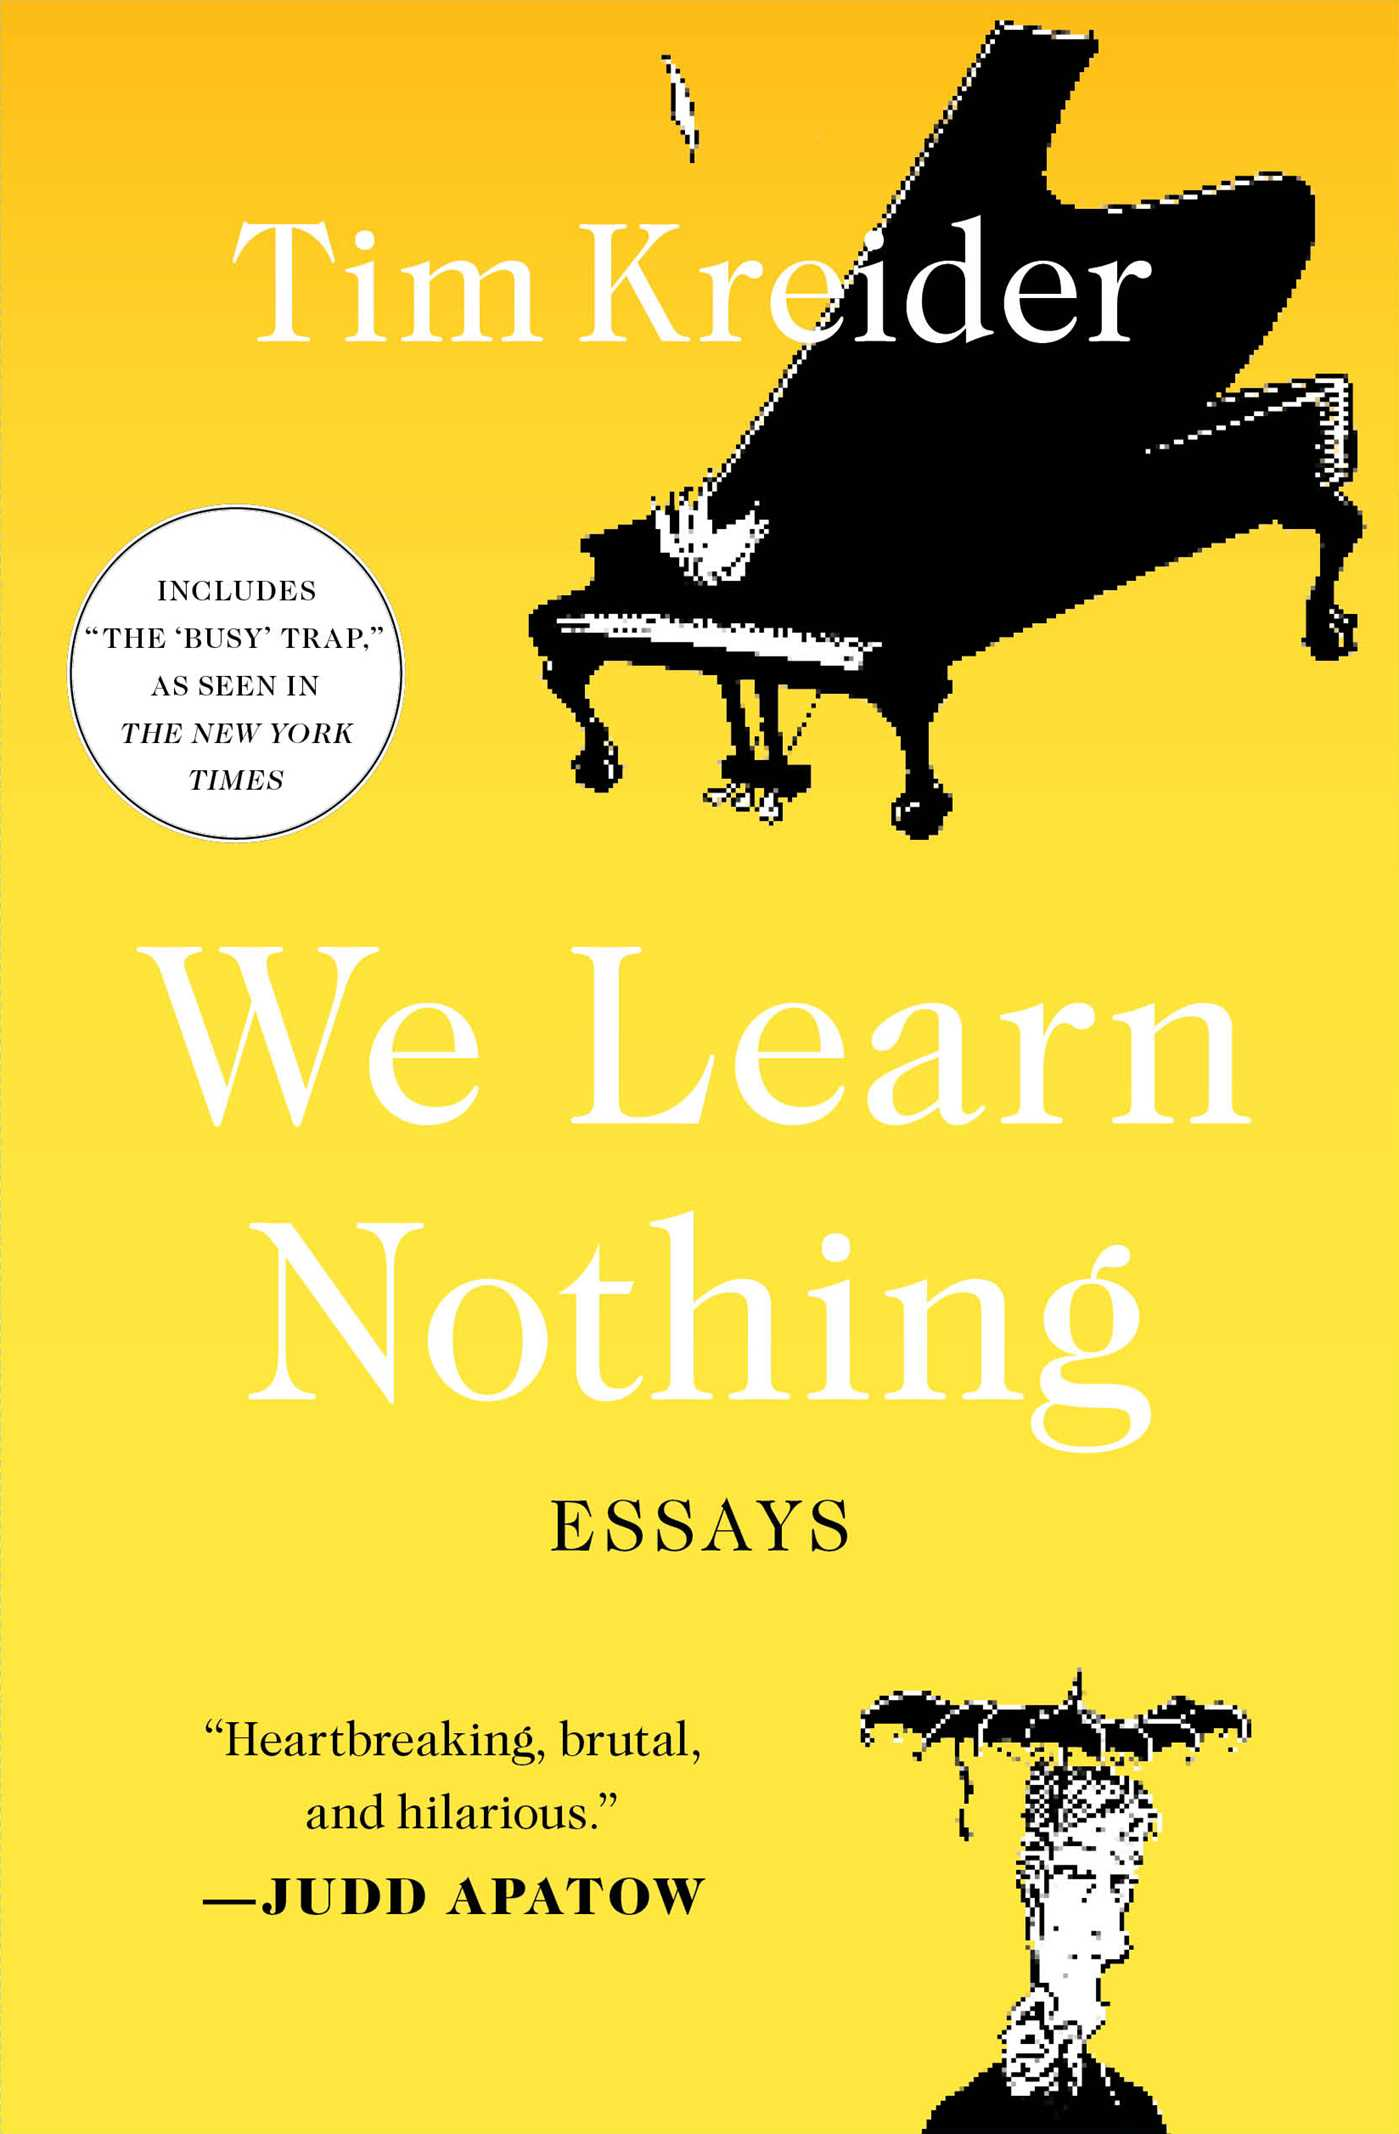 We-learn-nothing-9781439198728_hr